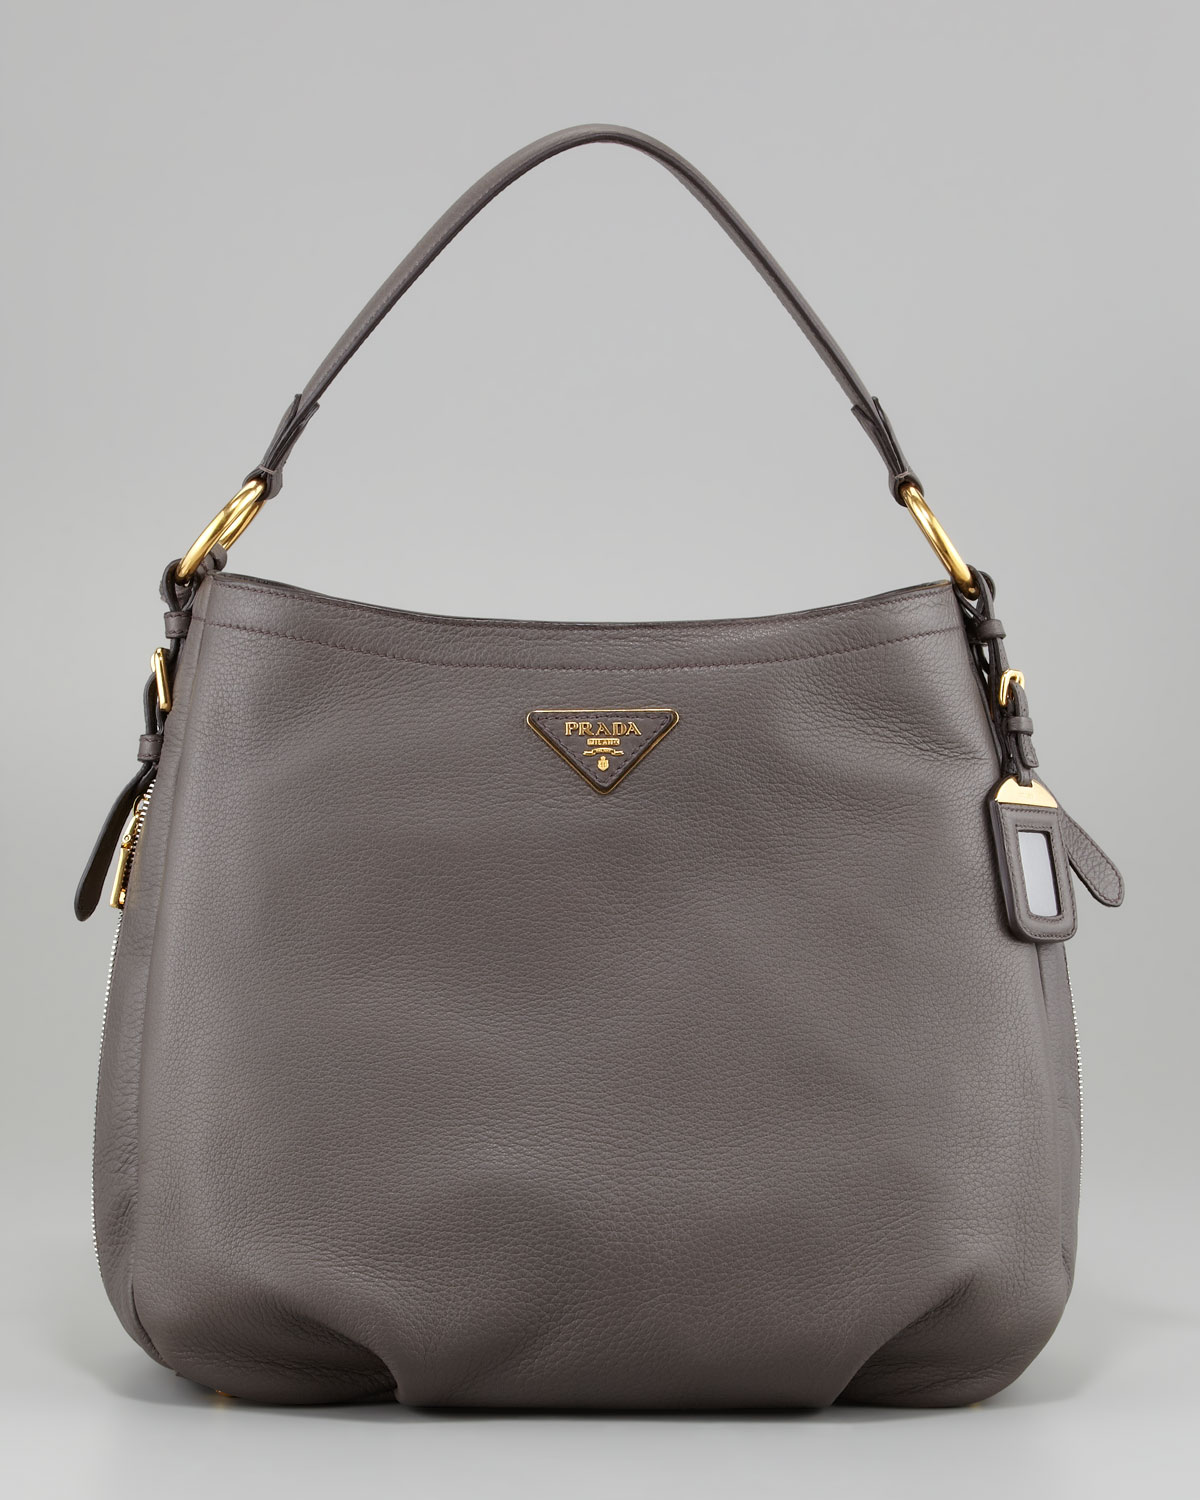 b58e0505455d19 Prada Cervo Hobo Bag in Gray (dark grey) | Lyst. Prada Black Vitello Daino  Leather Zip-Top Hobo Bag BR4311 .